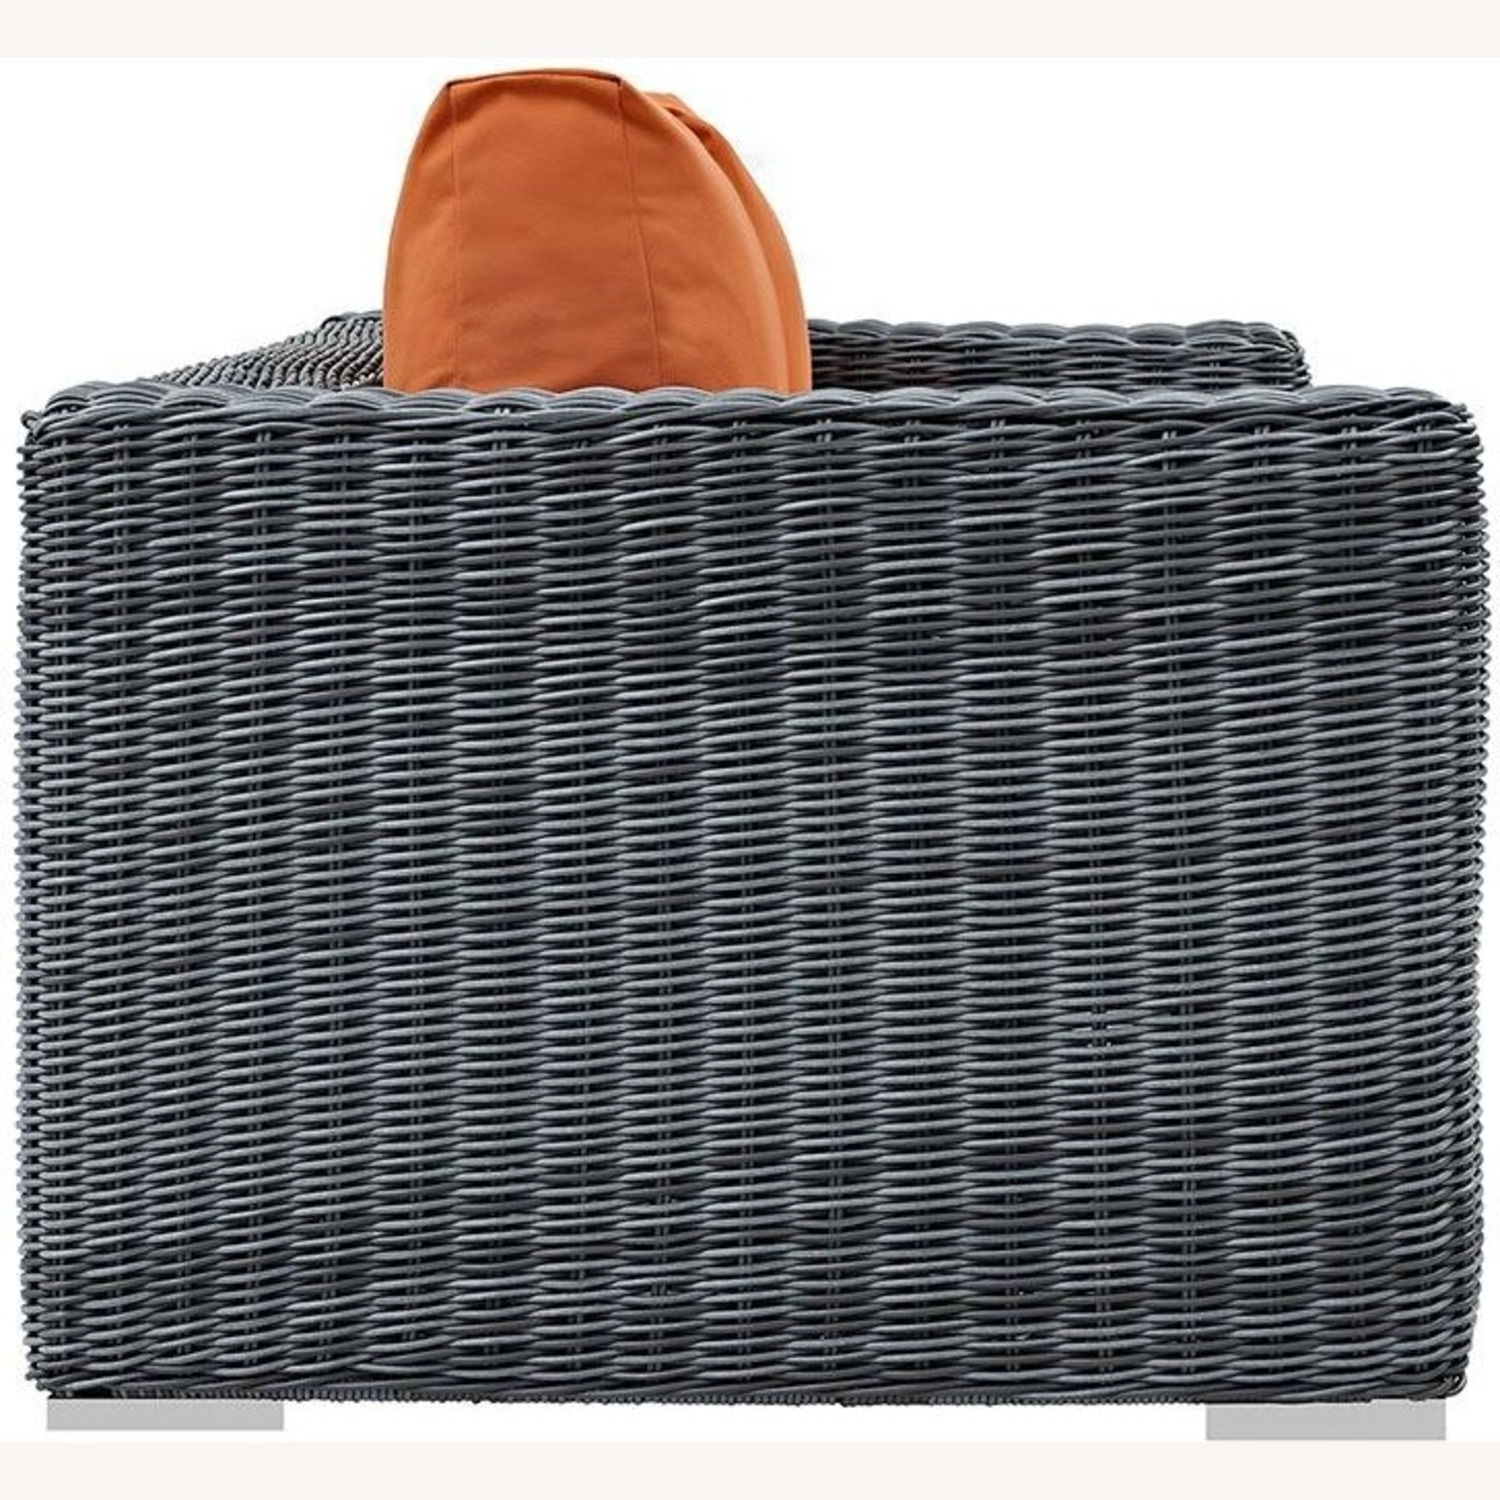 Outdoor Loveseat W/ Tuscan Cushion Fabric - image-3